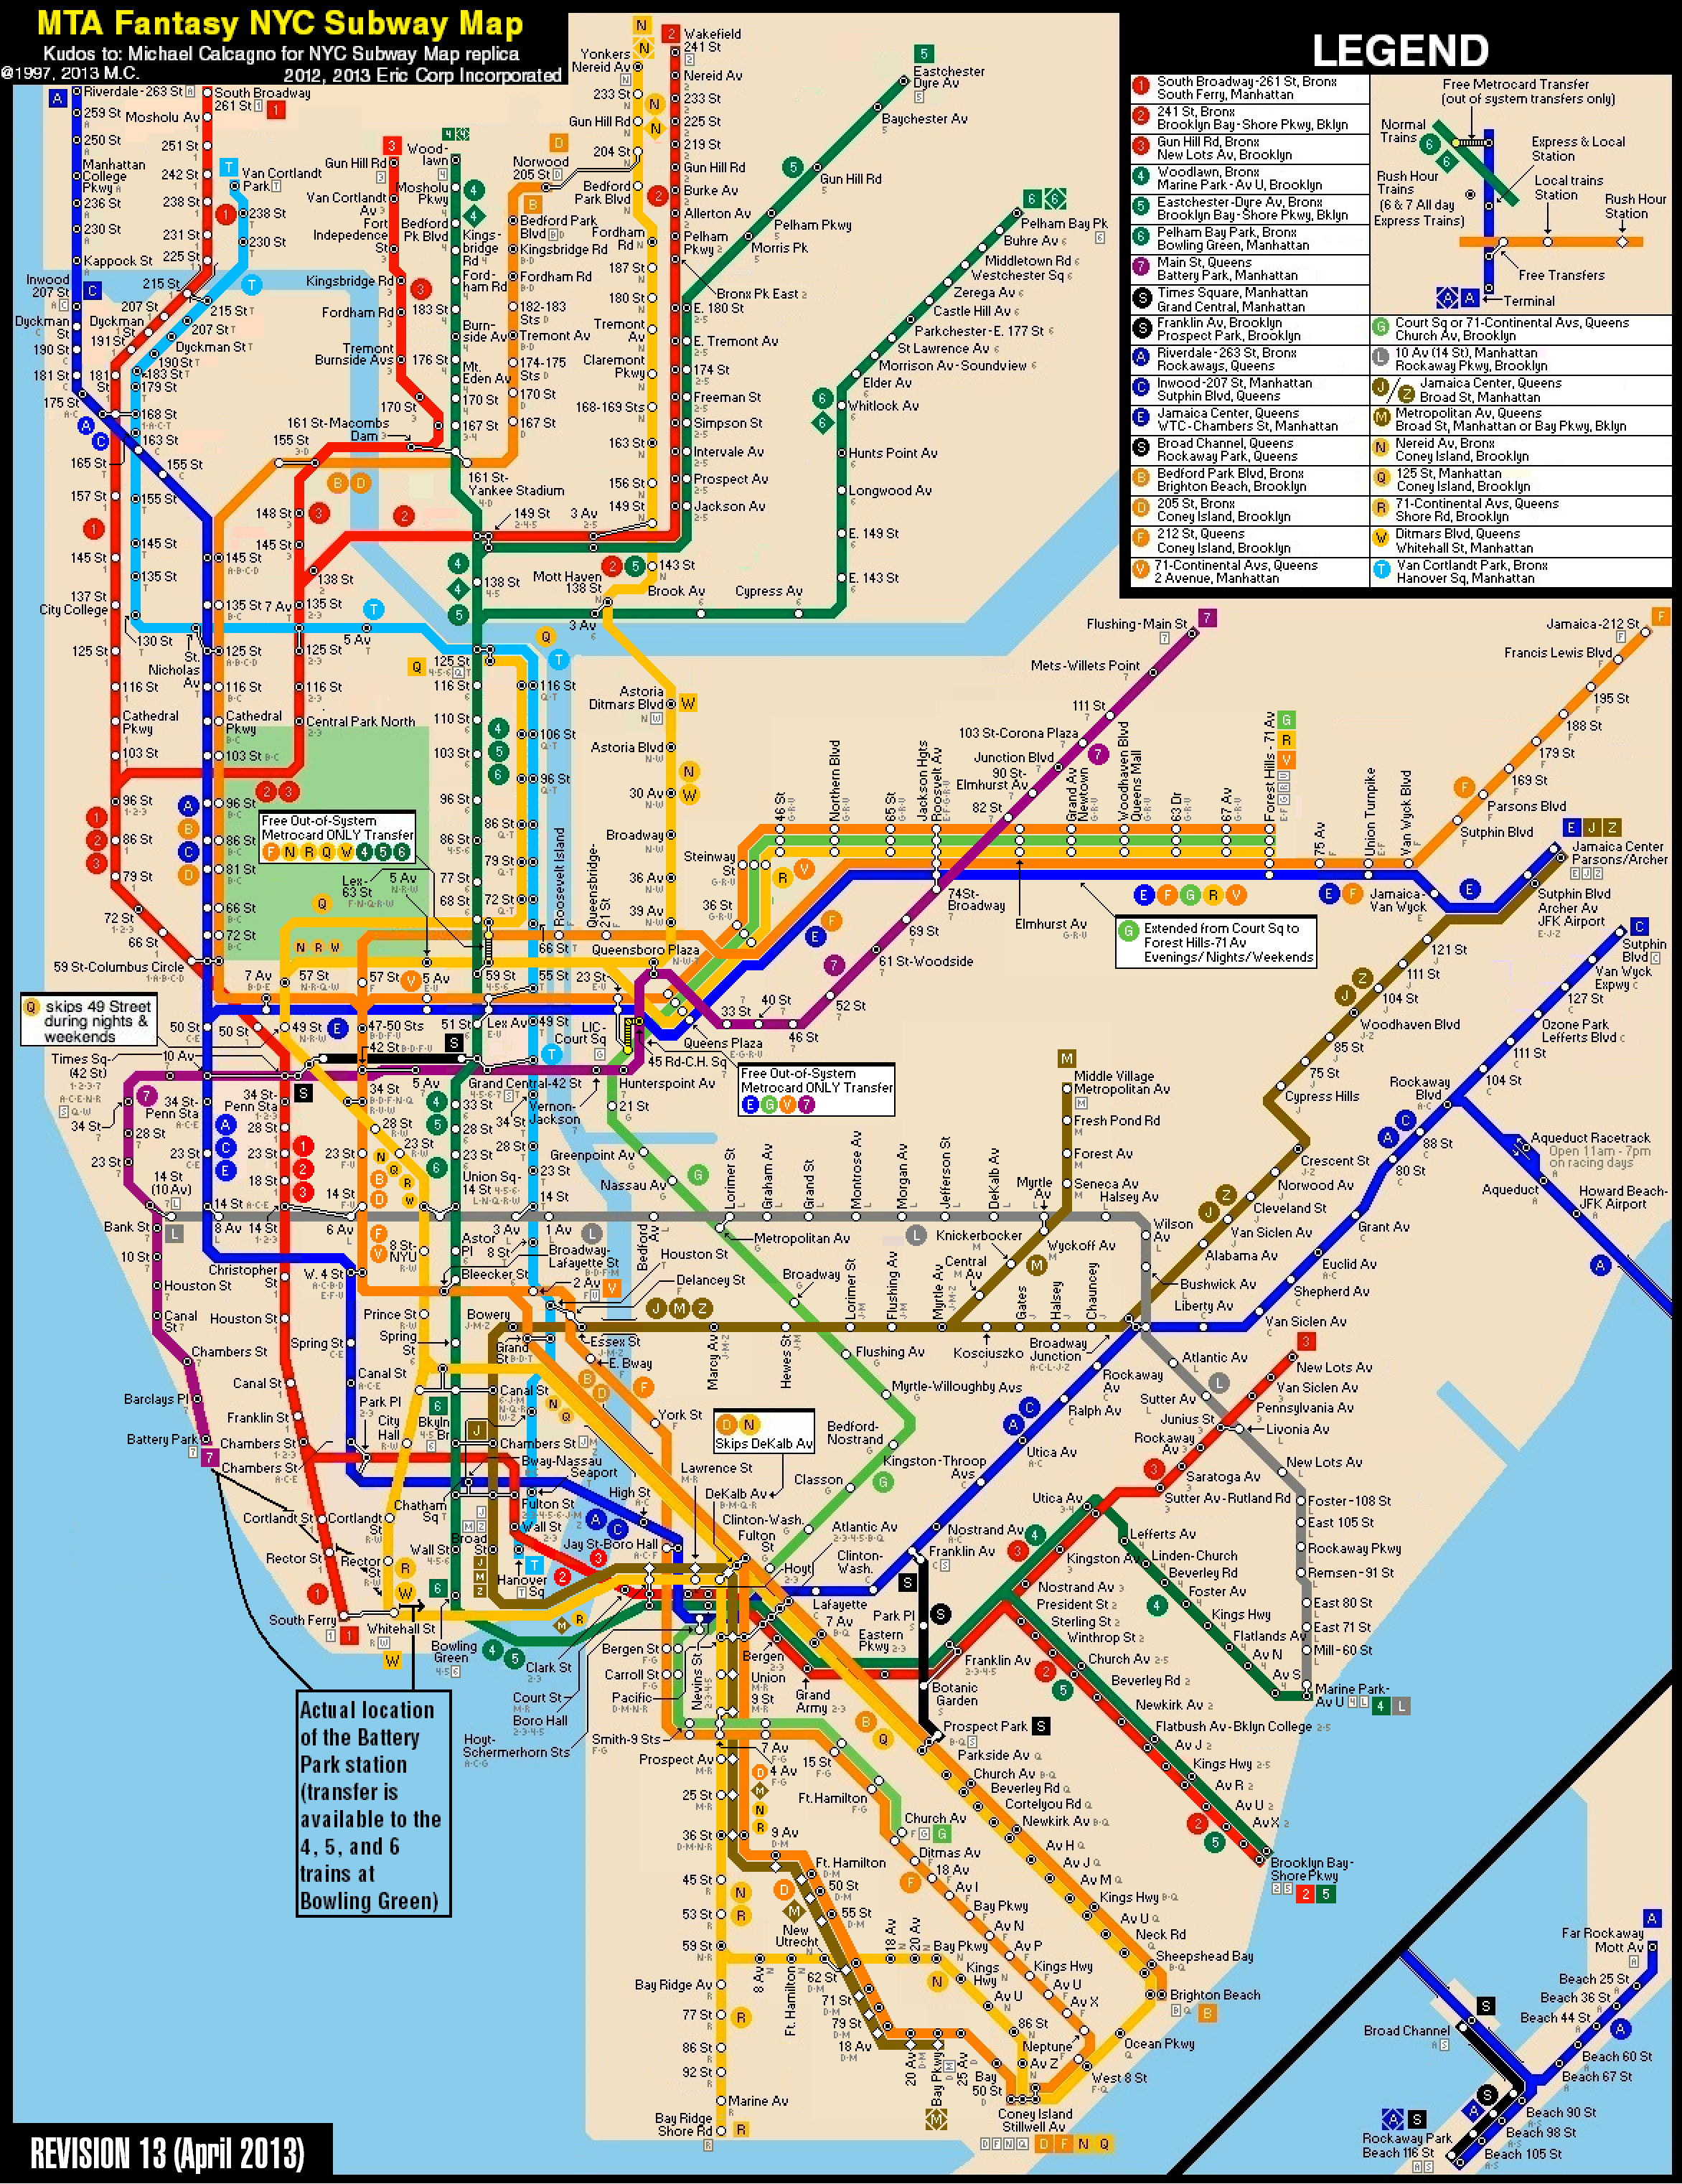 New York Subway Map New York City Subway Fantasy Map Revision 13 By Ecinc2xxx On Nyc Subway Map Map Of New York New York City Map